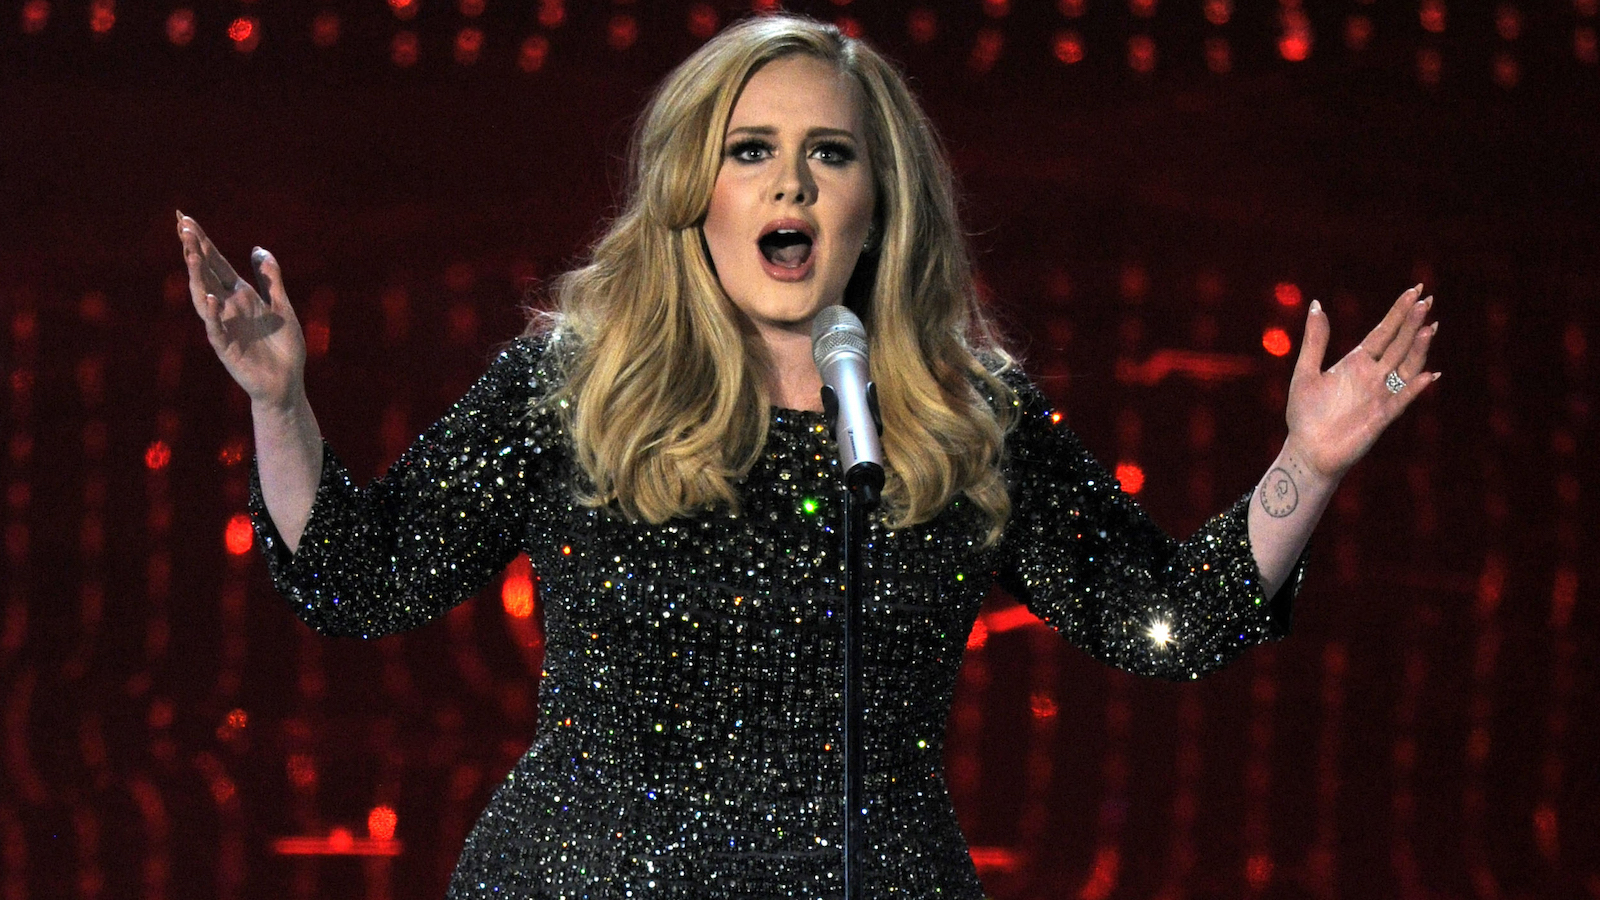 """FILE - In this Feb. 24, 2013 file photo, singer Adele performs during the Oscars at the Dolby Theatre in Los Angeles. Adele's """"Hello"""" was released Friday, Oct. 23, 2015, and topped the iTunes singles chart in 85 countries. The music video broke the Vevo record for most views in a day with 27.7 million.  (Photo by Chris Pizzello/Invision/AP, File)"""